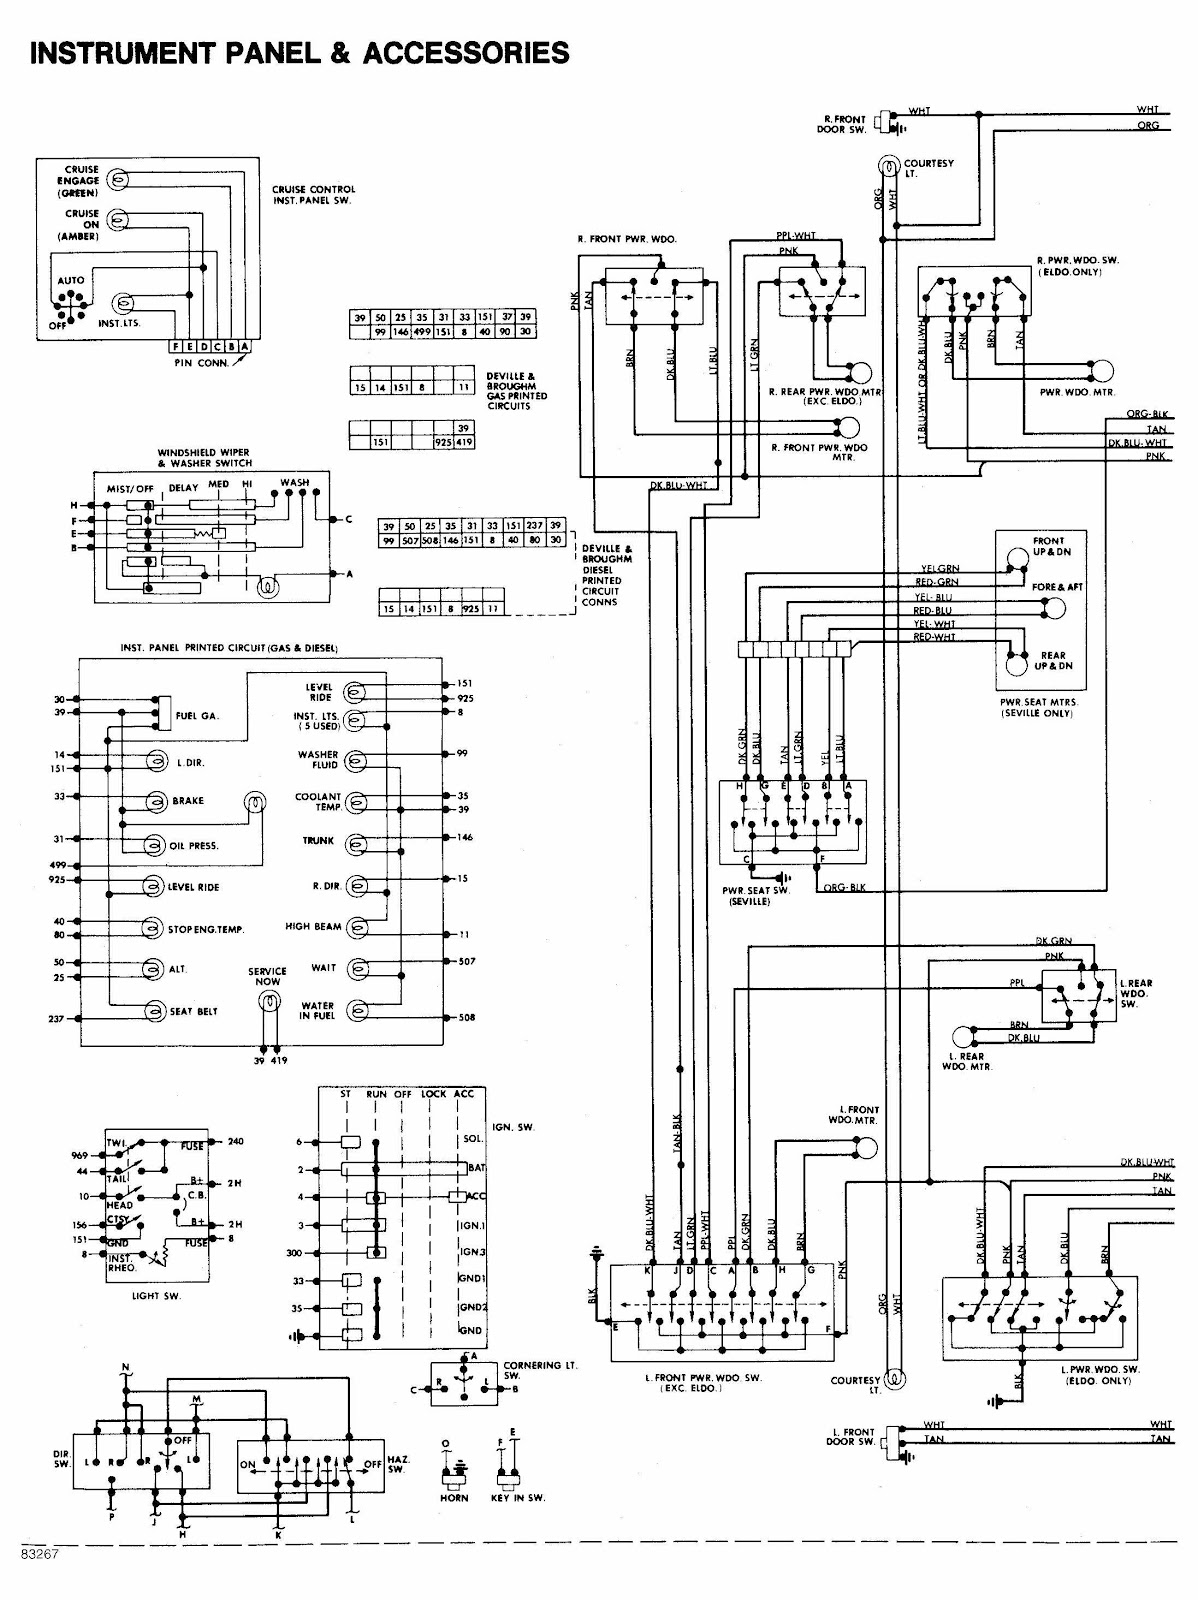 1984 wiring diagram cadillac de ville 1984 instrument panel and accessories wiring cadillac deville 1984 instrument panel and accessories